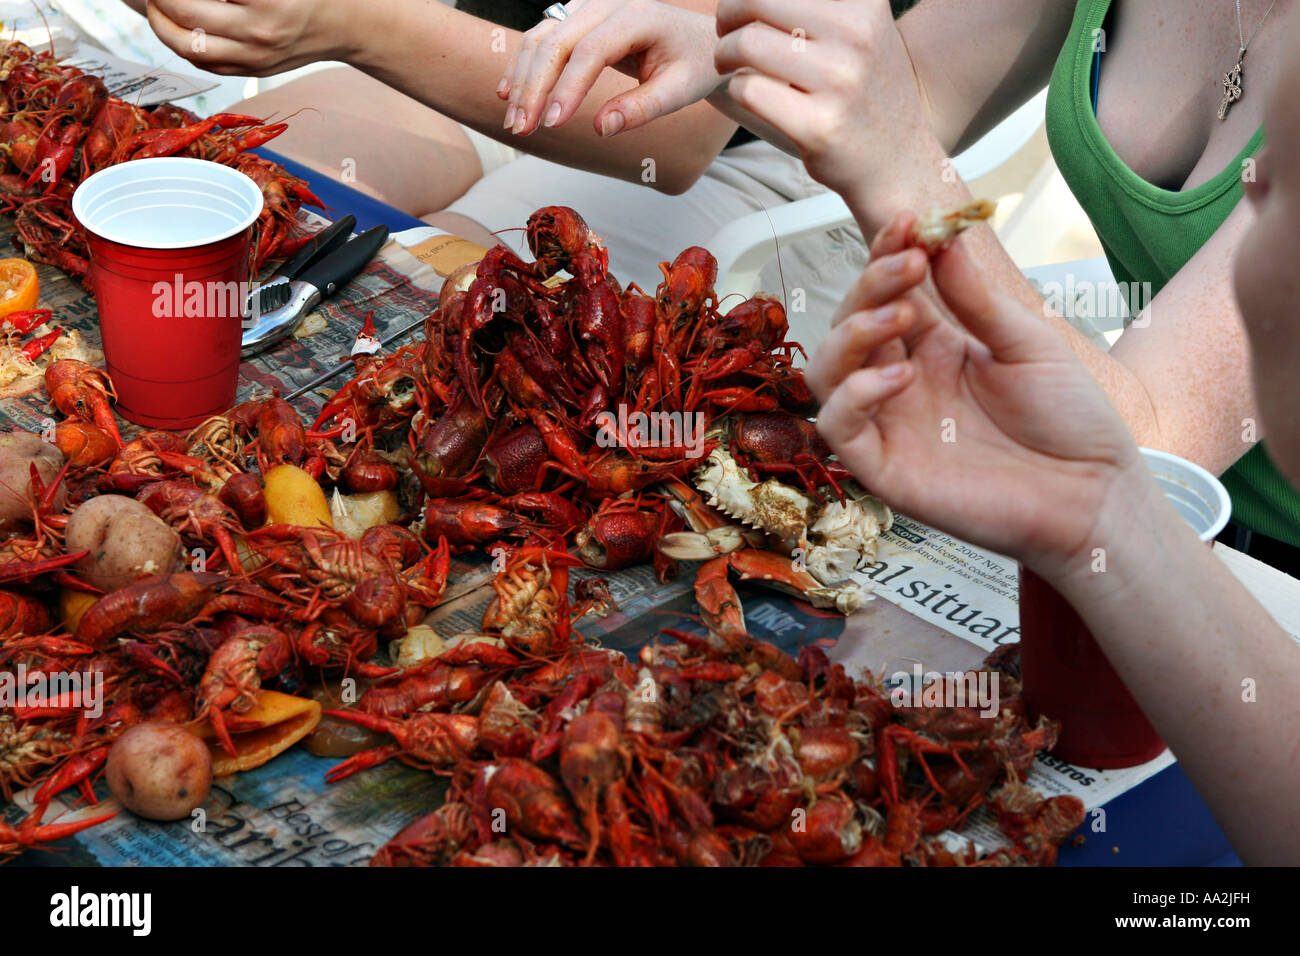 A pile of half eaten crawfish at a backyard crawfish boil - Stock Image